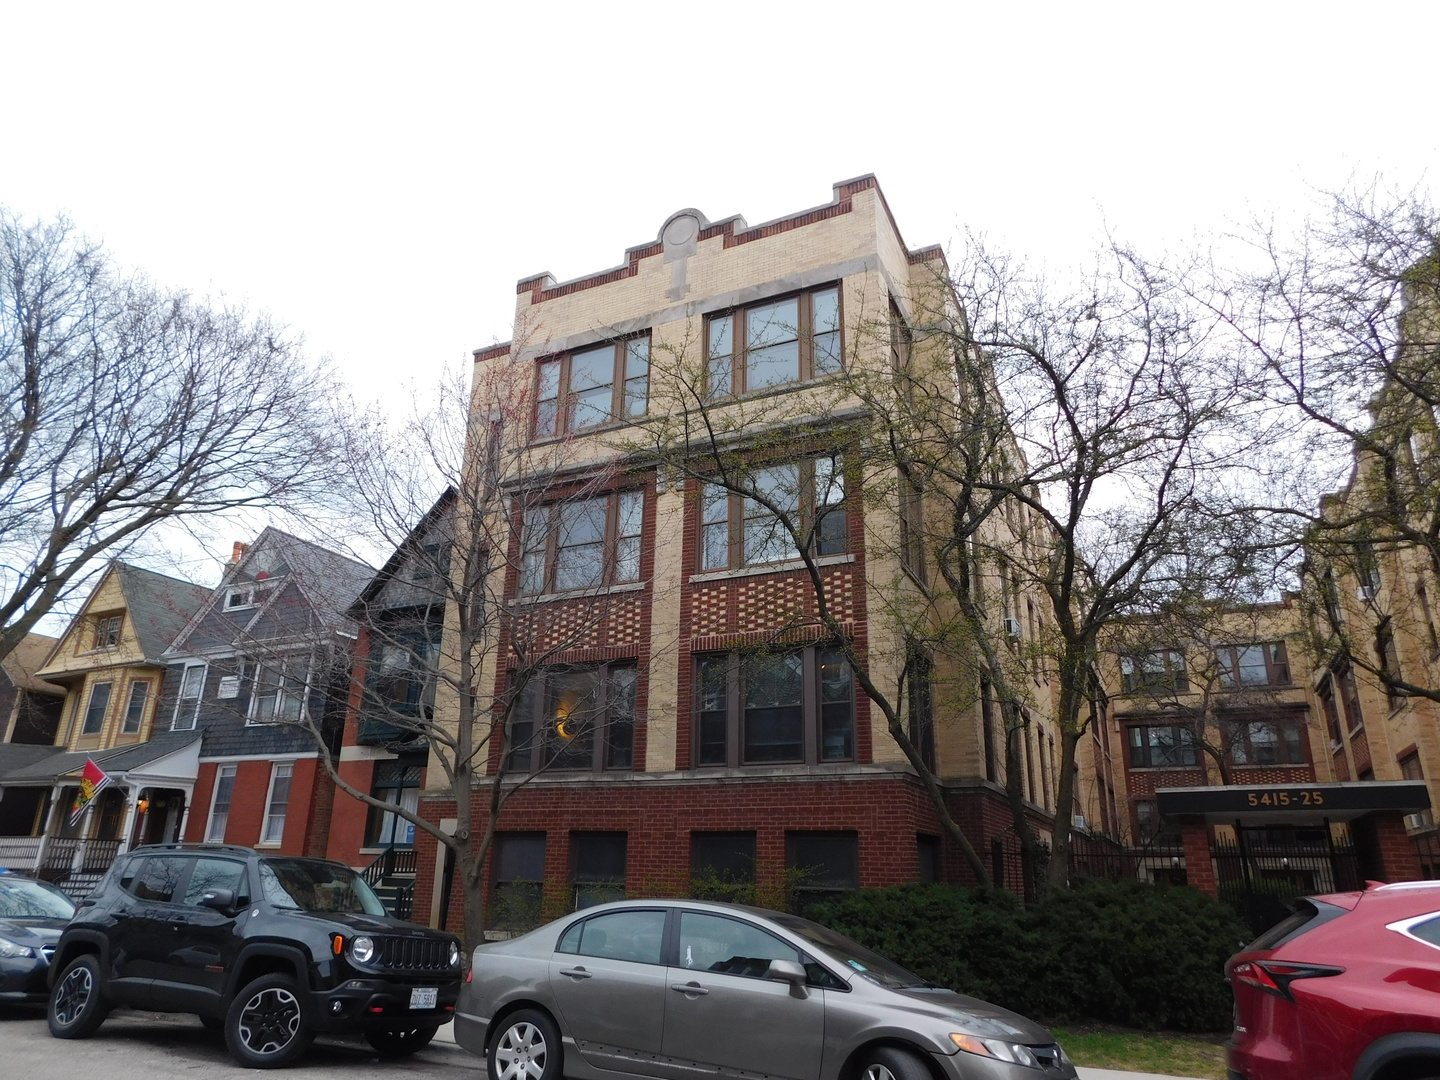 5415 Dorchester Unit Unit 2b ,Chicago, Illinois 60615